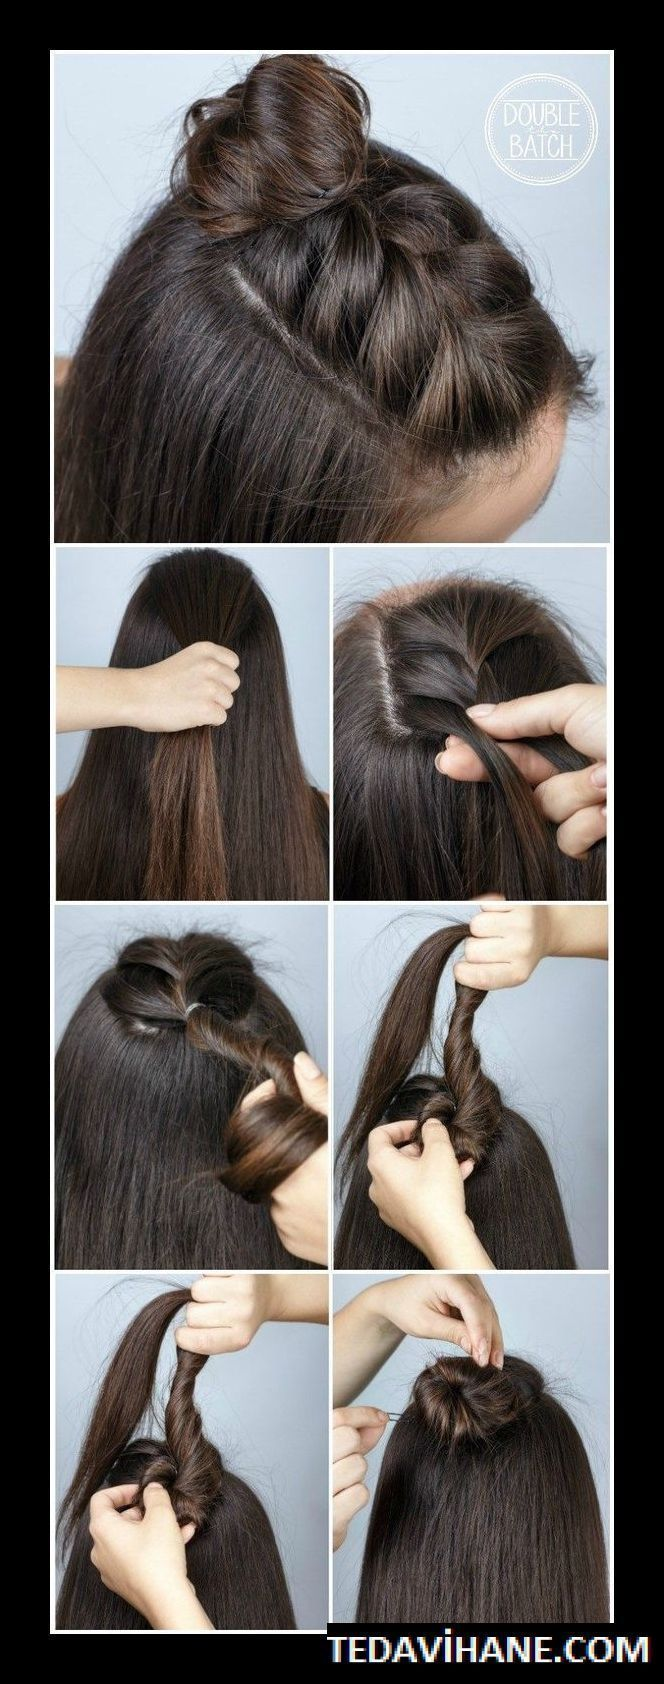 Hair #Styles #For #School # 22 #Quick #and #Easy #Back #to #School #Hairstyle # Tutorials + #back_to_school_bulletin_boards # #back_to_school_diy # #back_to_school_hairstyles # #back_to_school_highschool # #backtoschoolhairstyles